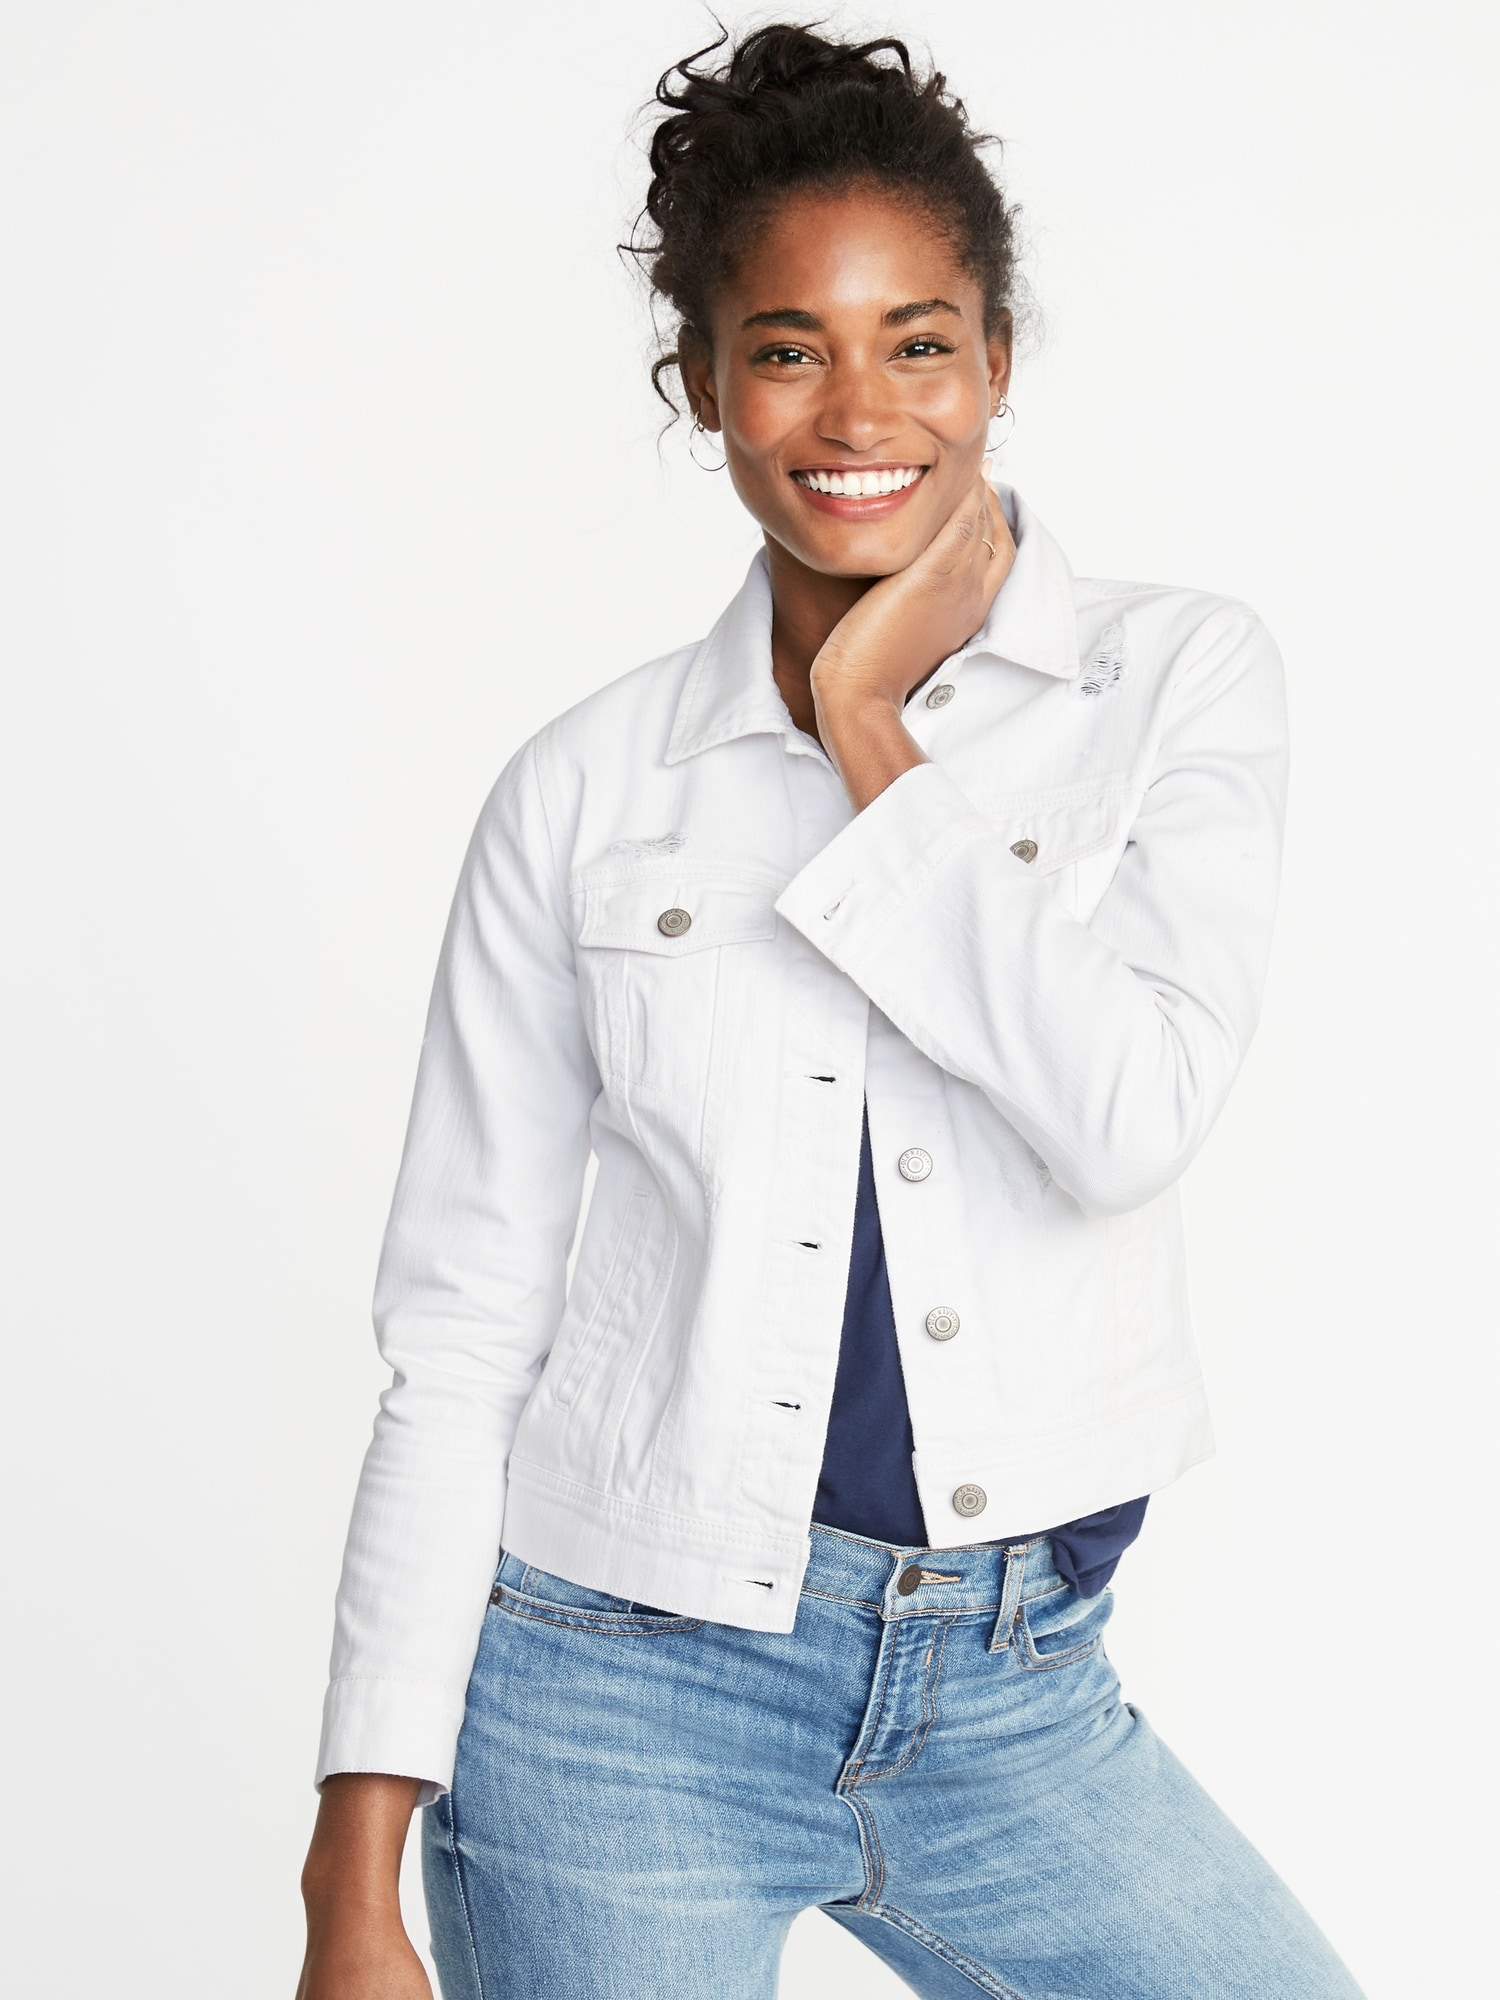 authentic offer discounts finest selection Distressed White Jean Jacket For Women | Old Navy